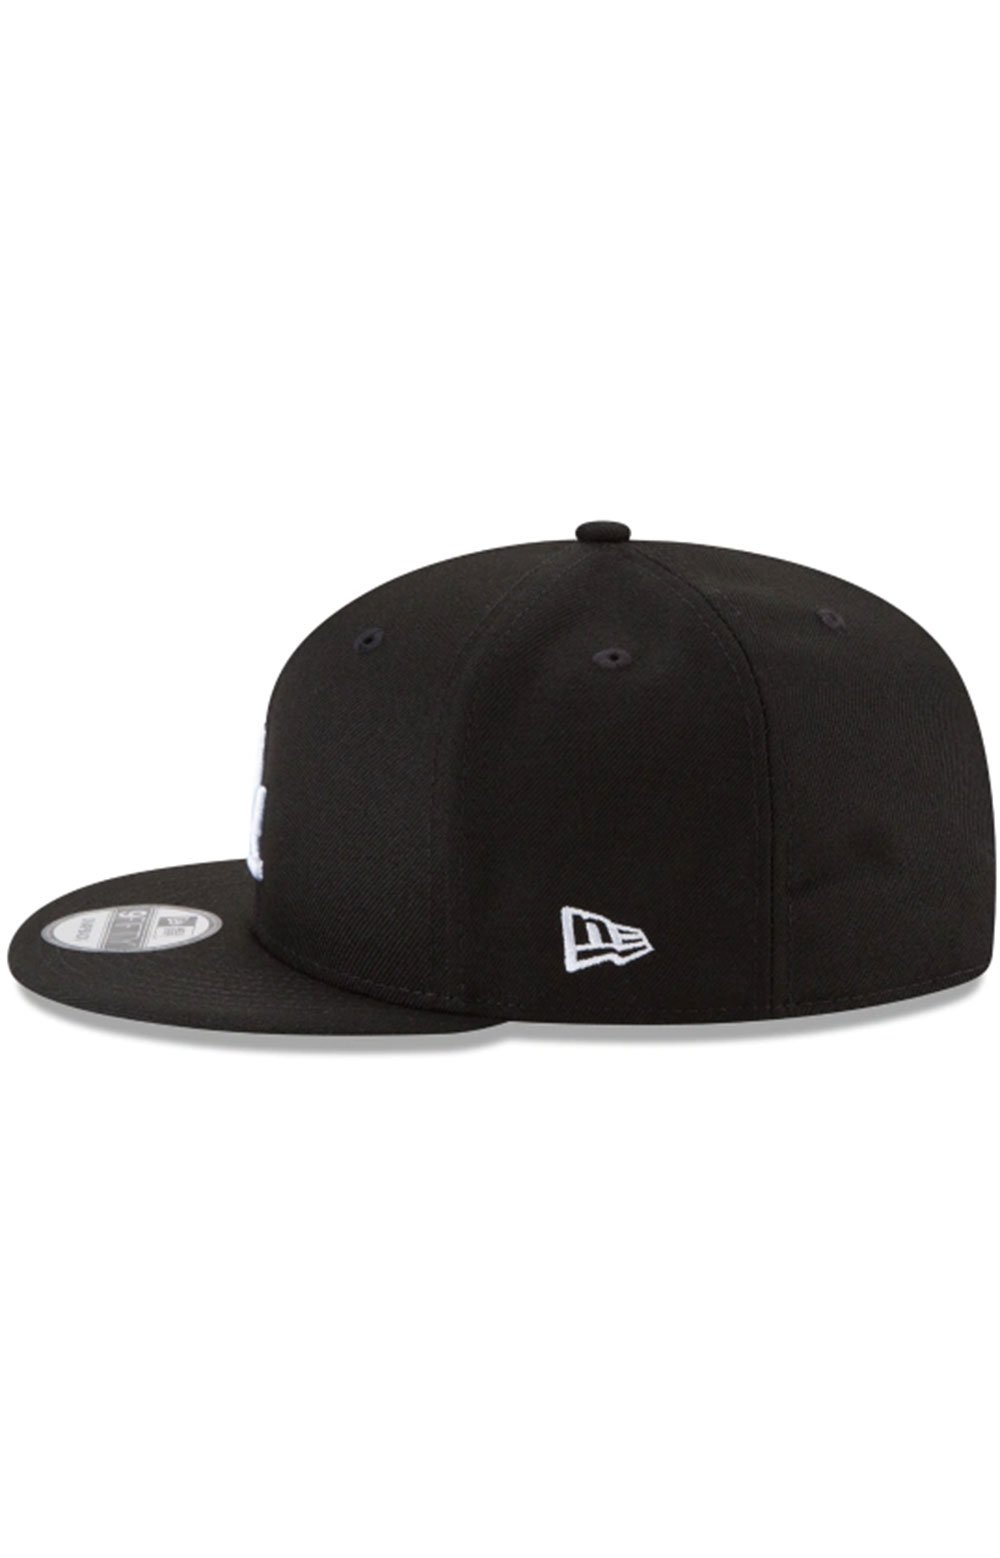 Los Angeles Dodgers Basic 9Fifty Snap-Back Hat - Black/White 4